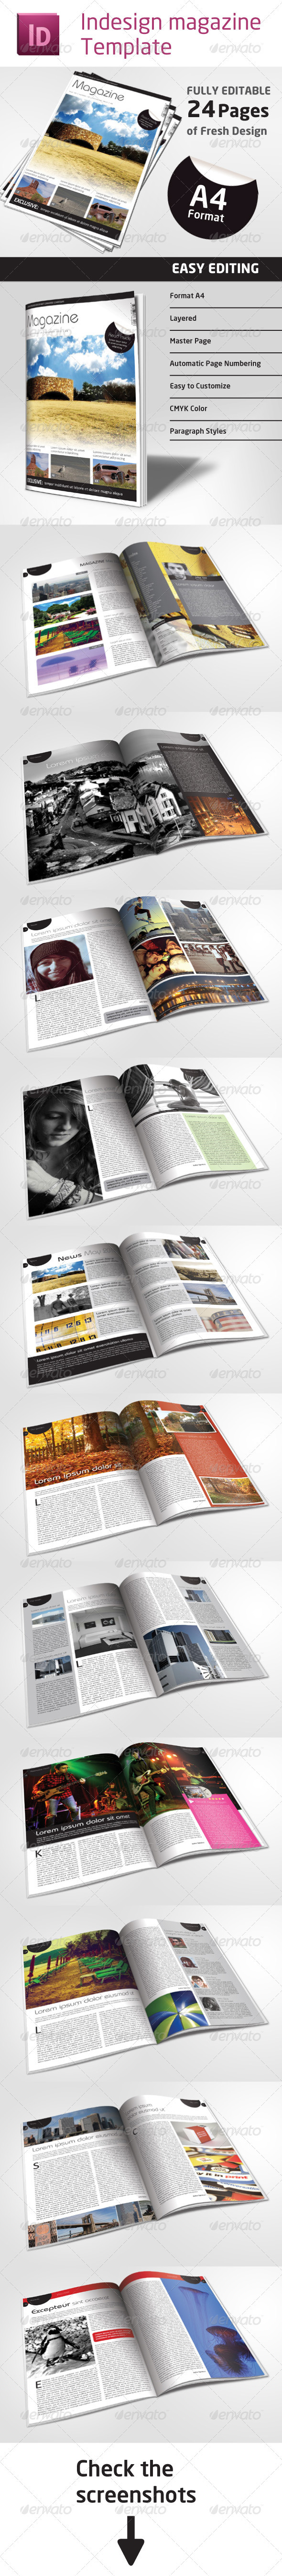 24 Pages Magazine Template in A4 Format by Grga_atree | GraphicRiver